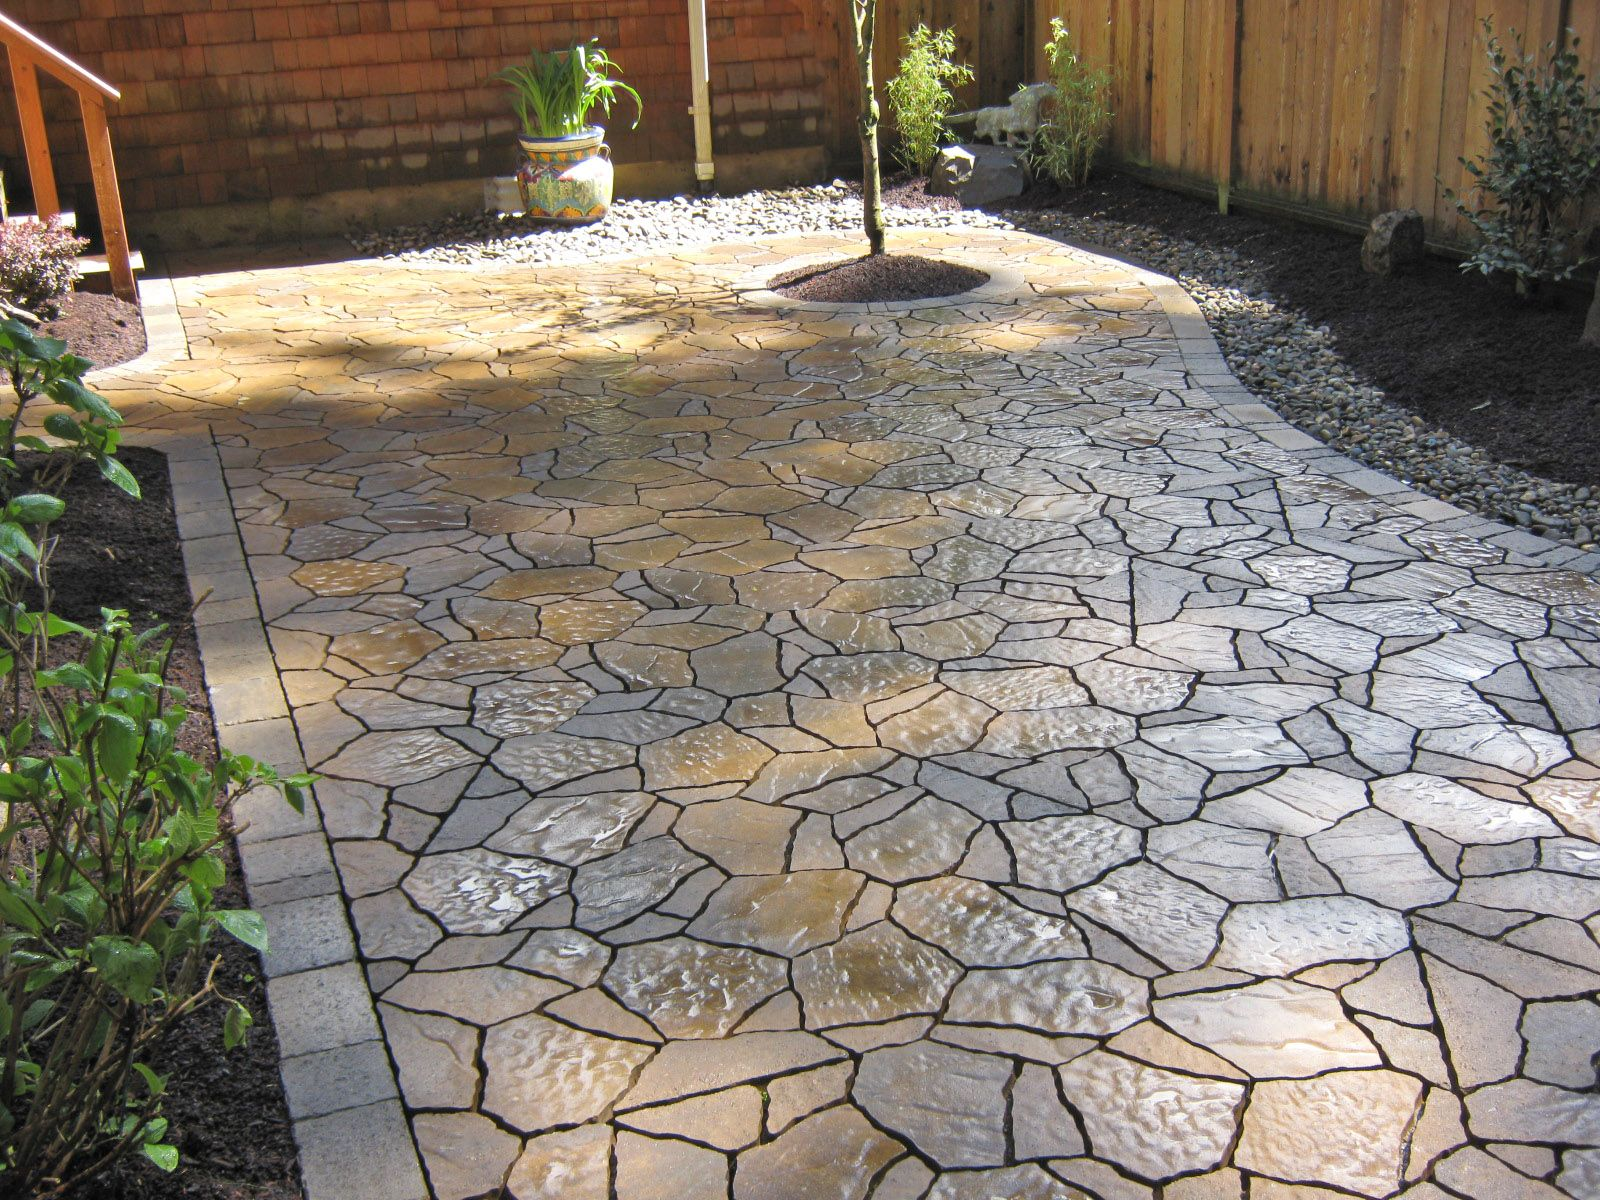 flagstone patio sitescapes landscape design stony brook ny gardening outdoor living pinterest crazy paving stony and landscape designs - Pavers Patio Ideas